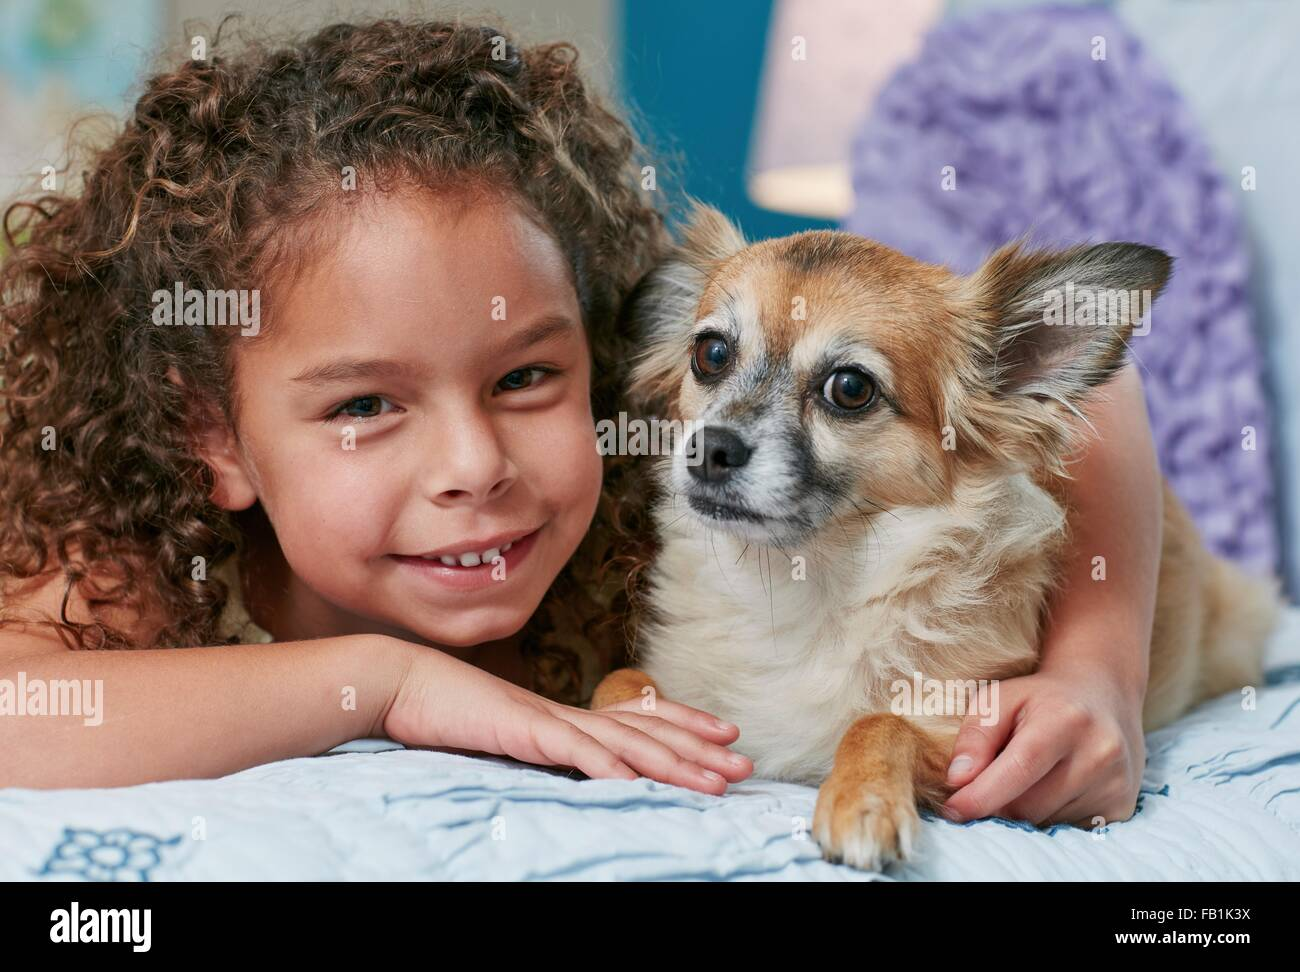 Girl lying on bed arm around dog, looking at camera smiling Stock Photo